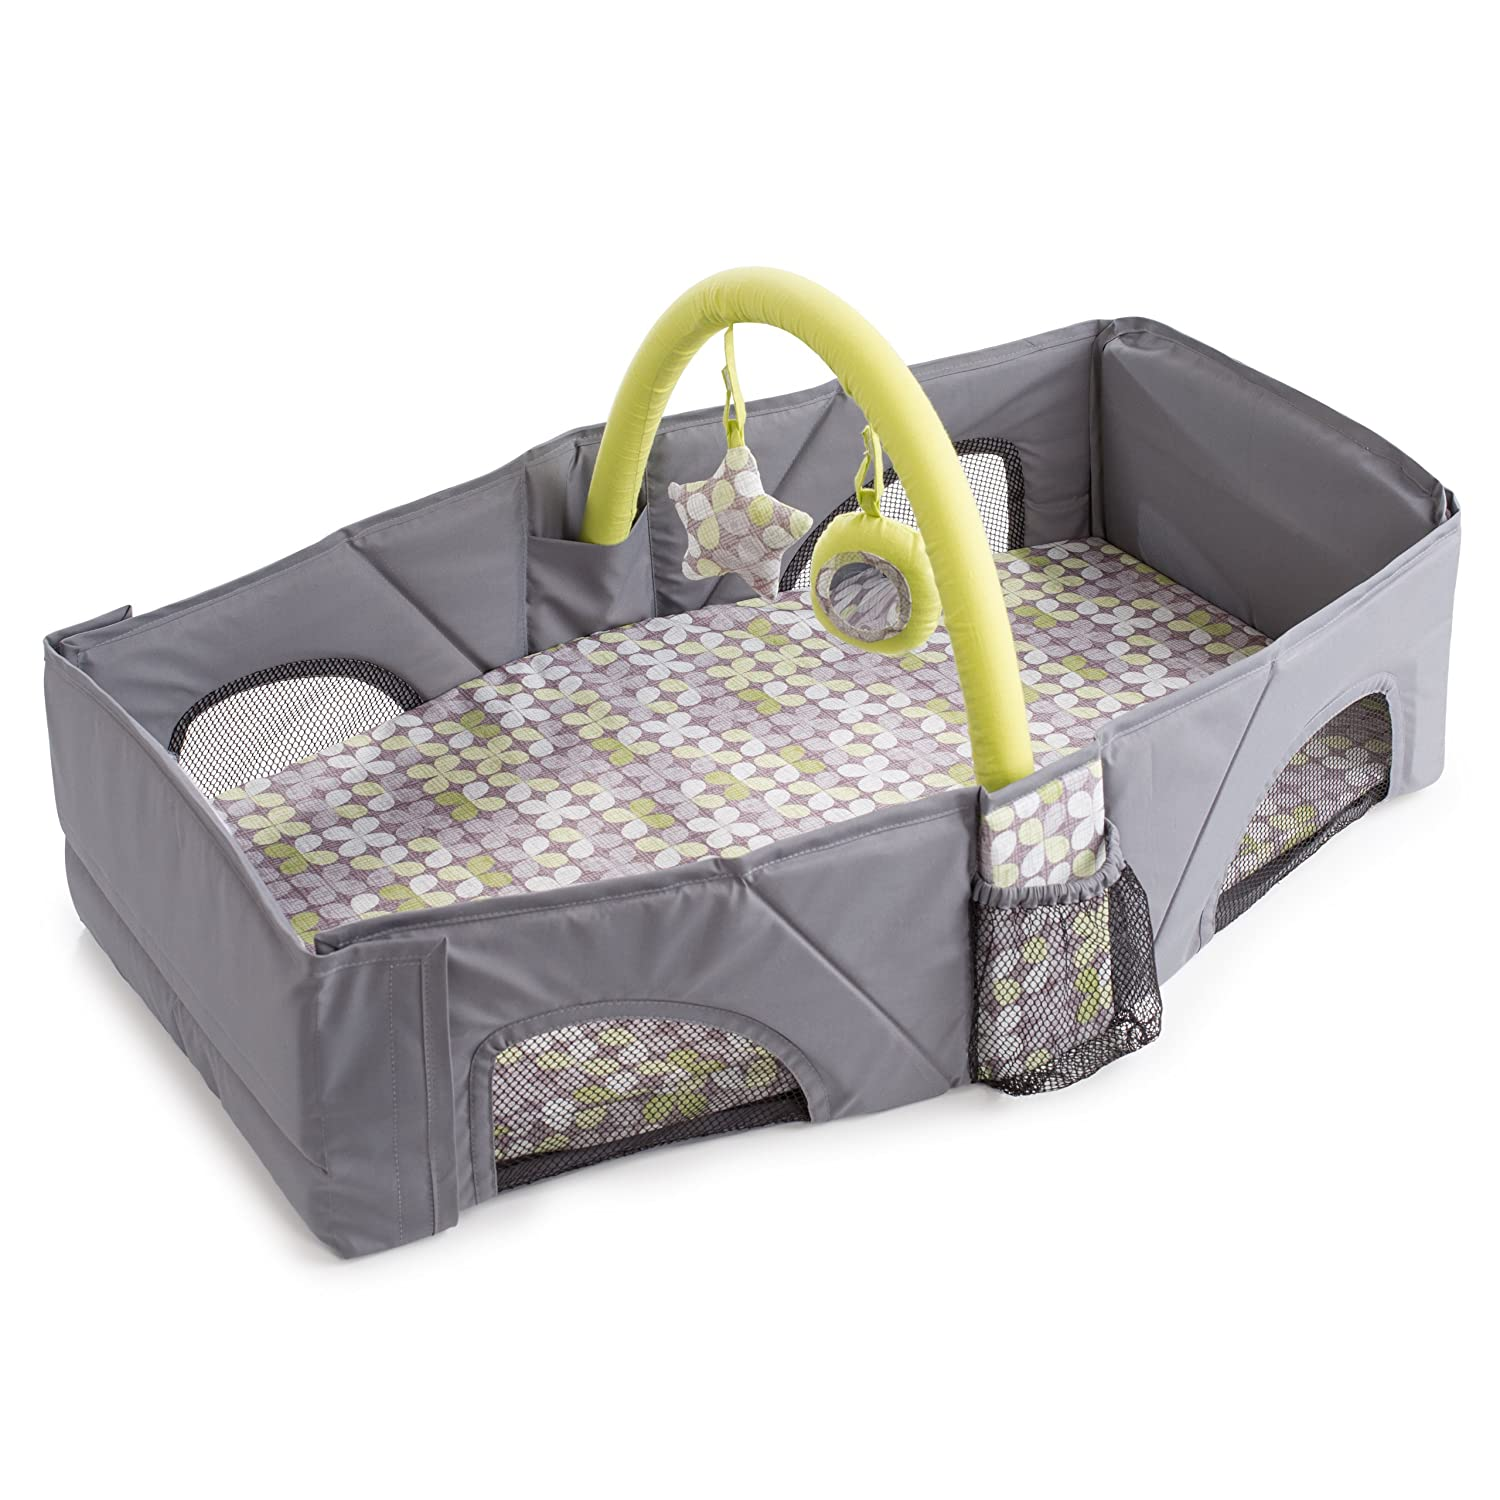 Summer Infant Travel Bed 78210